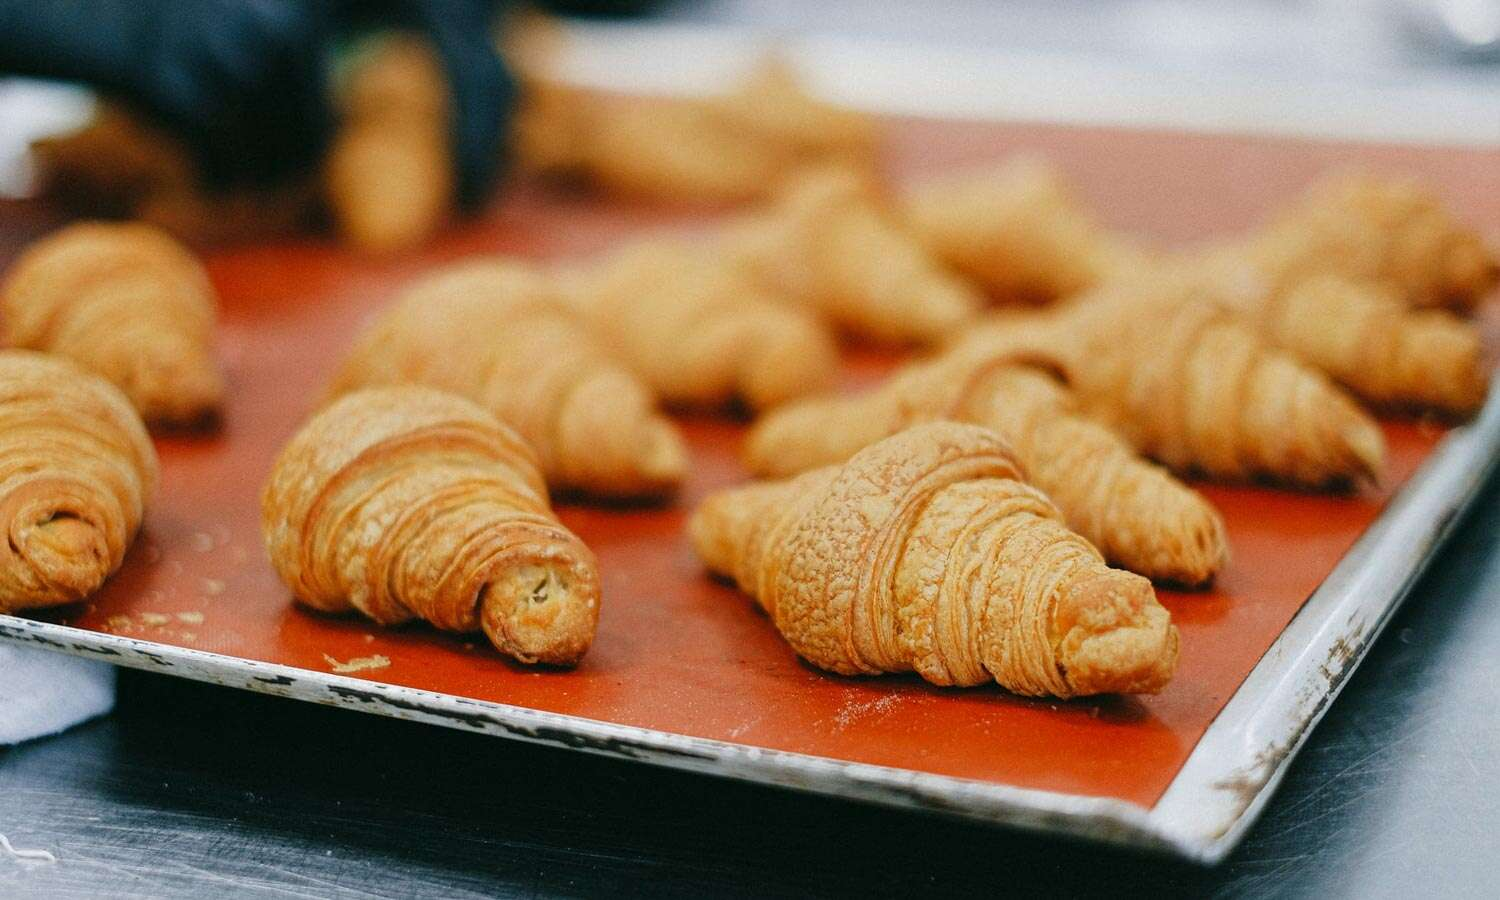 Where to find (and eat) the absolute best croissants in Paris